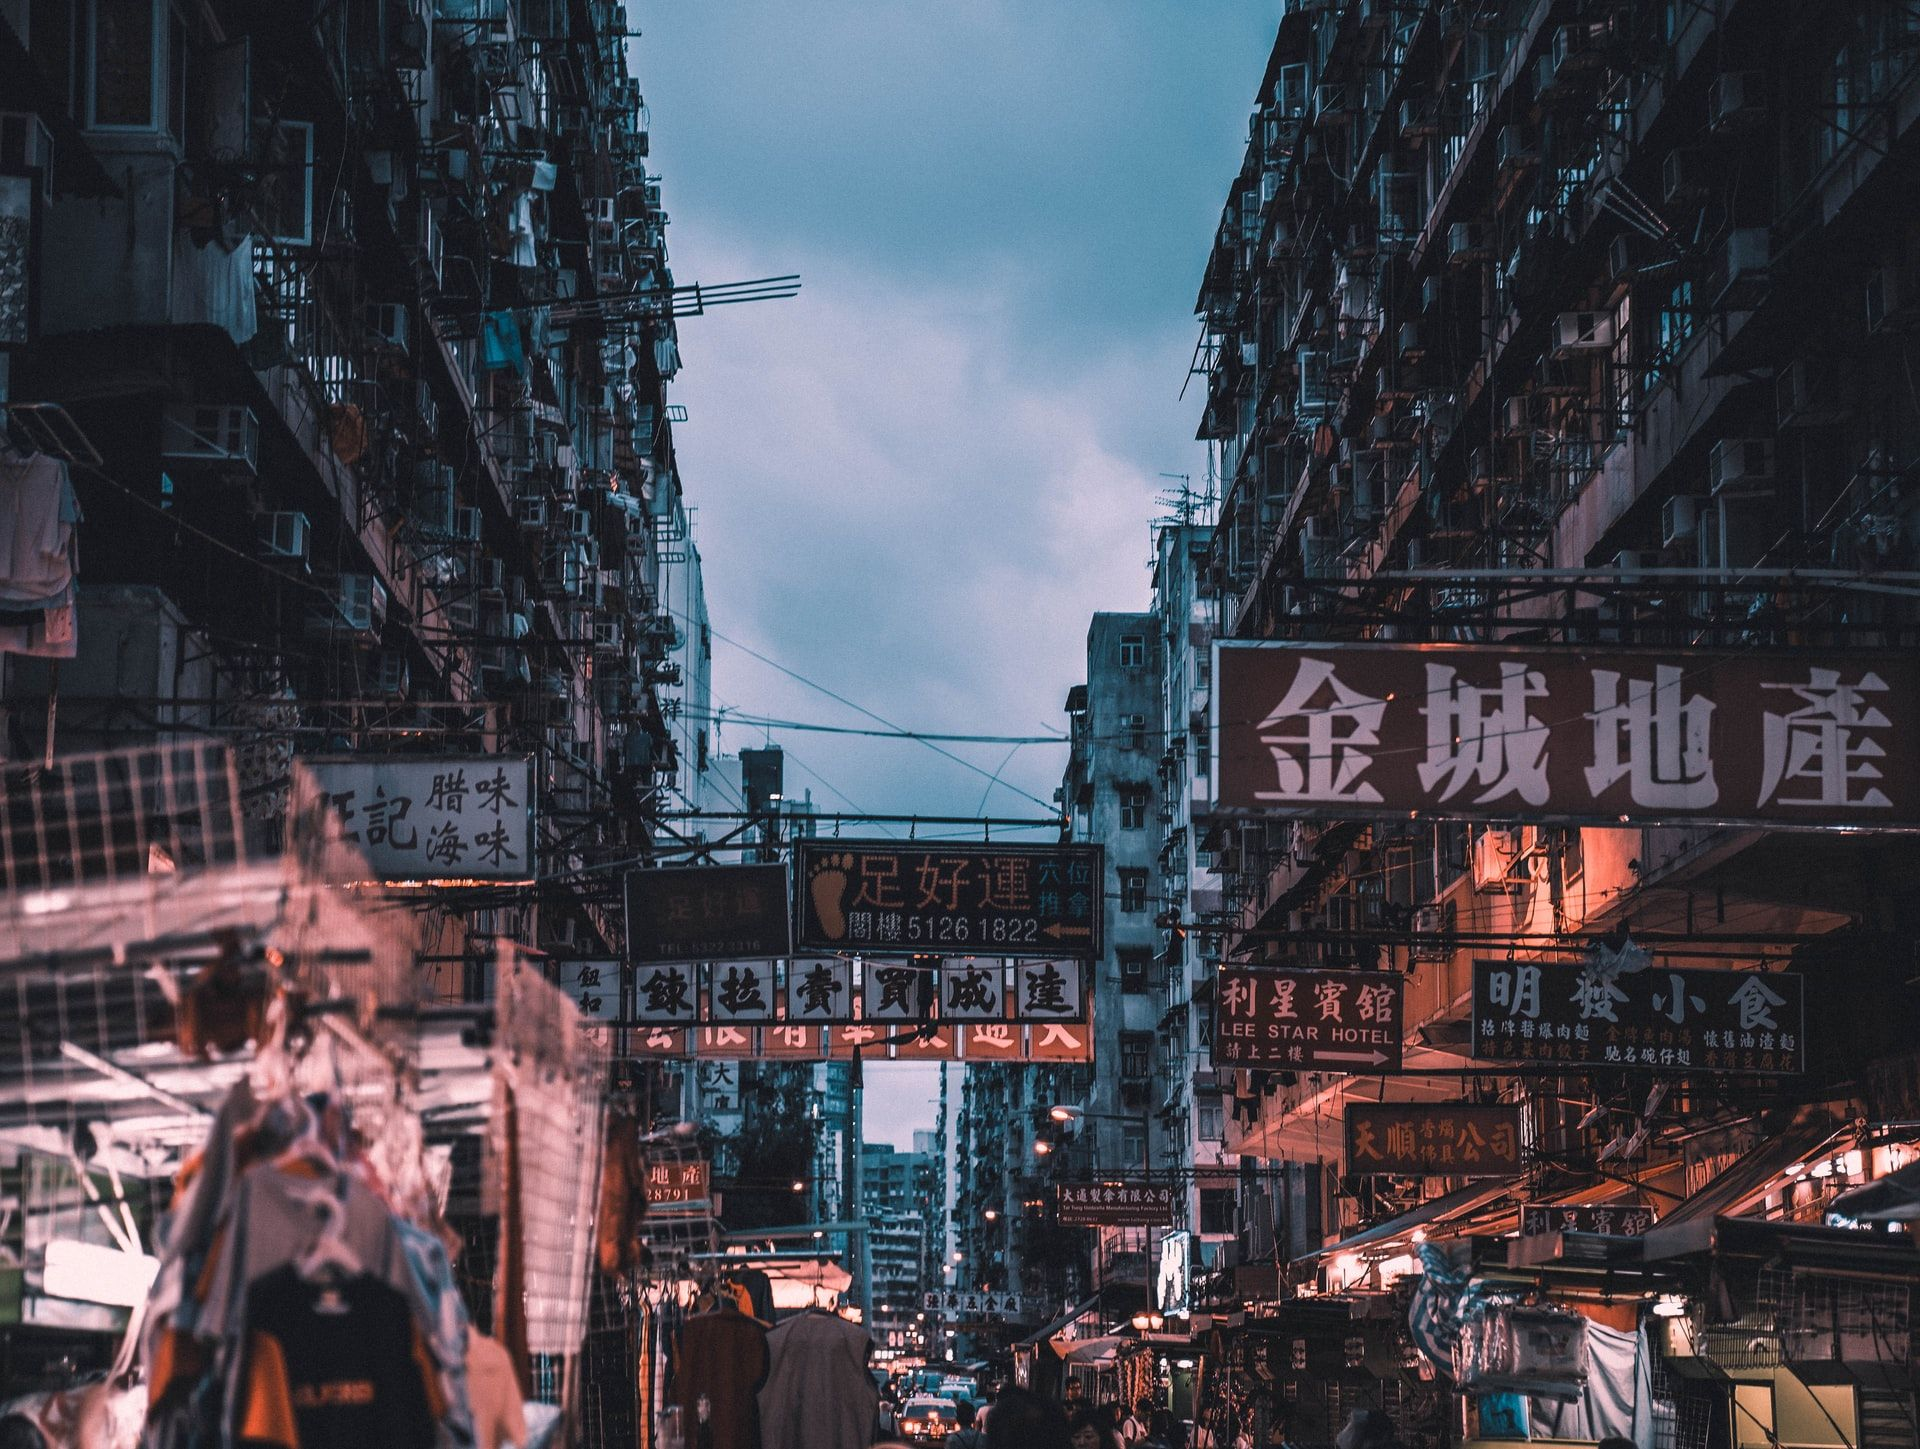 Neighbourhood Guide: Where To Eat, Drink And Shop In Sham Shui Po